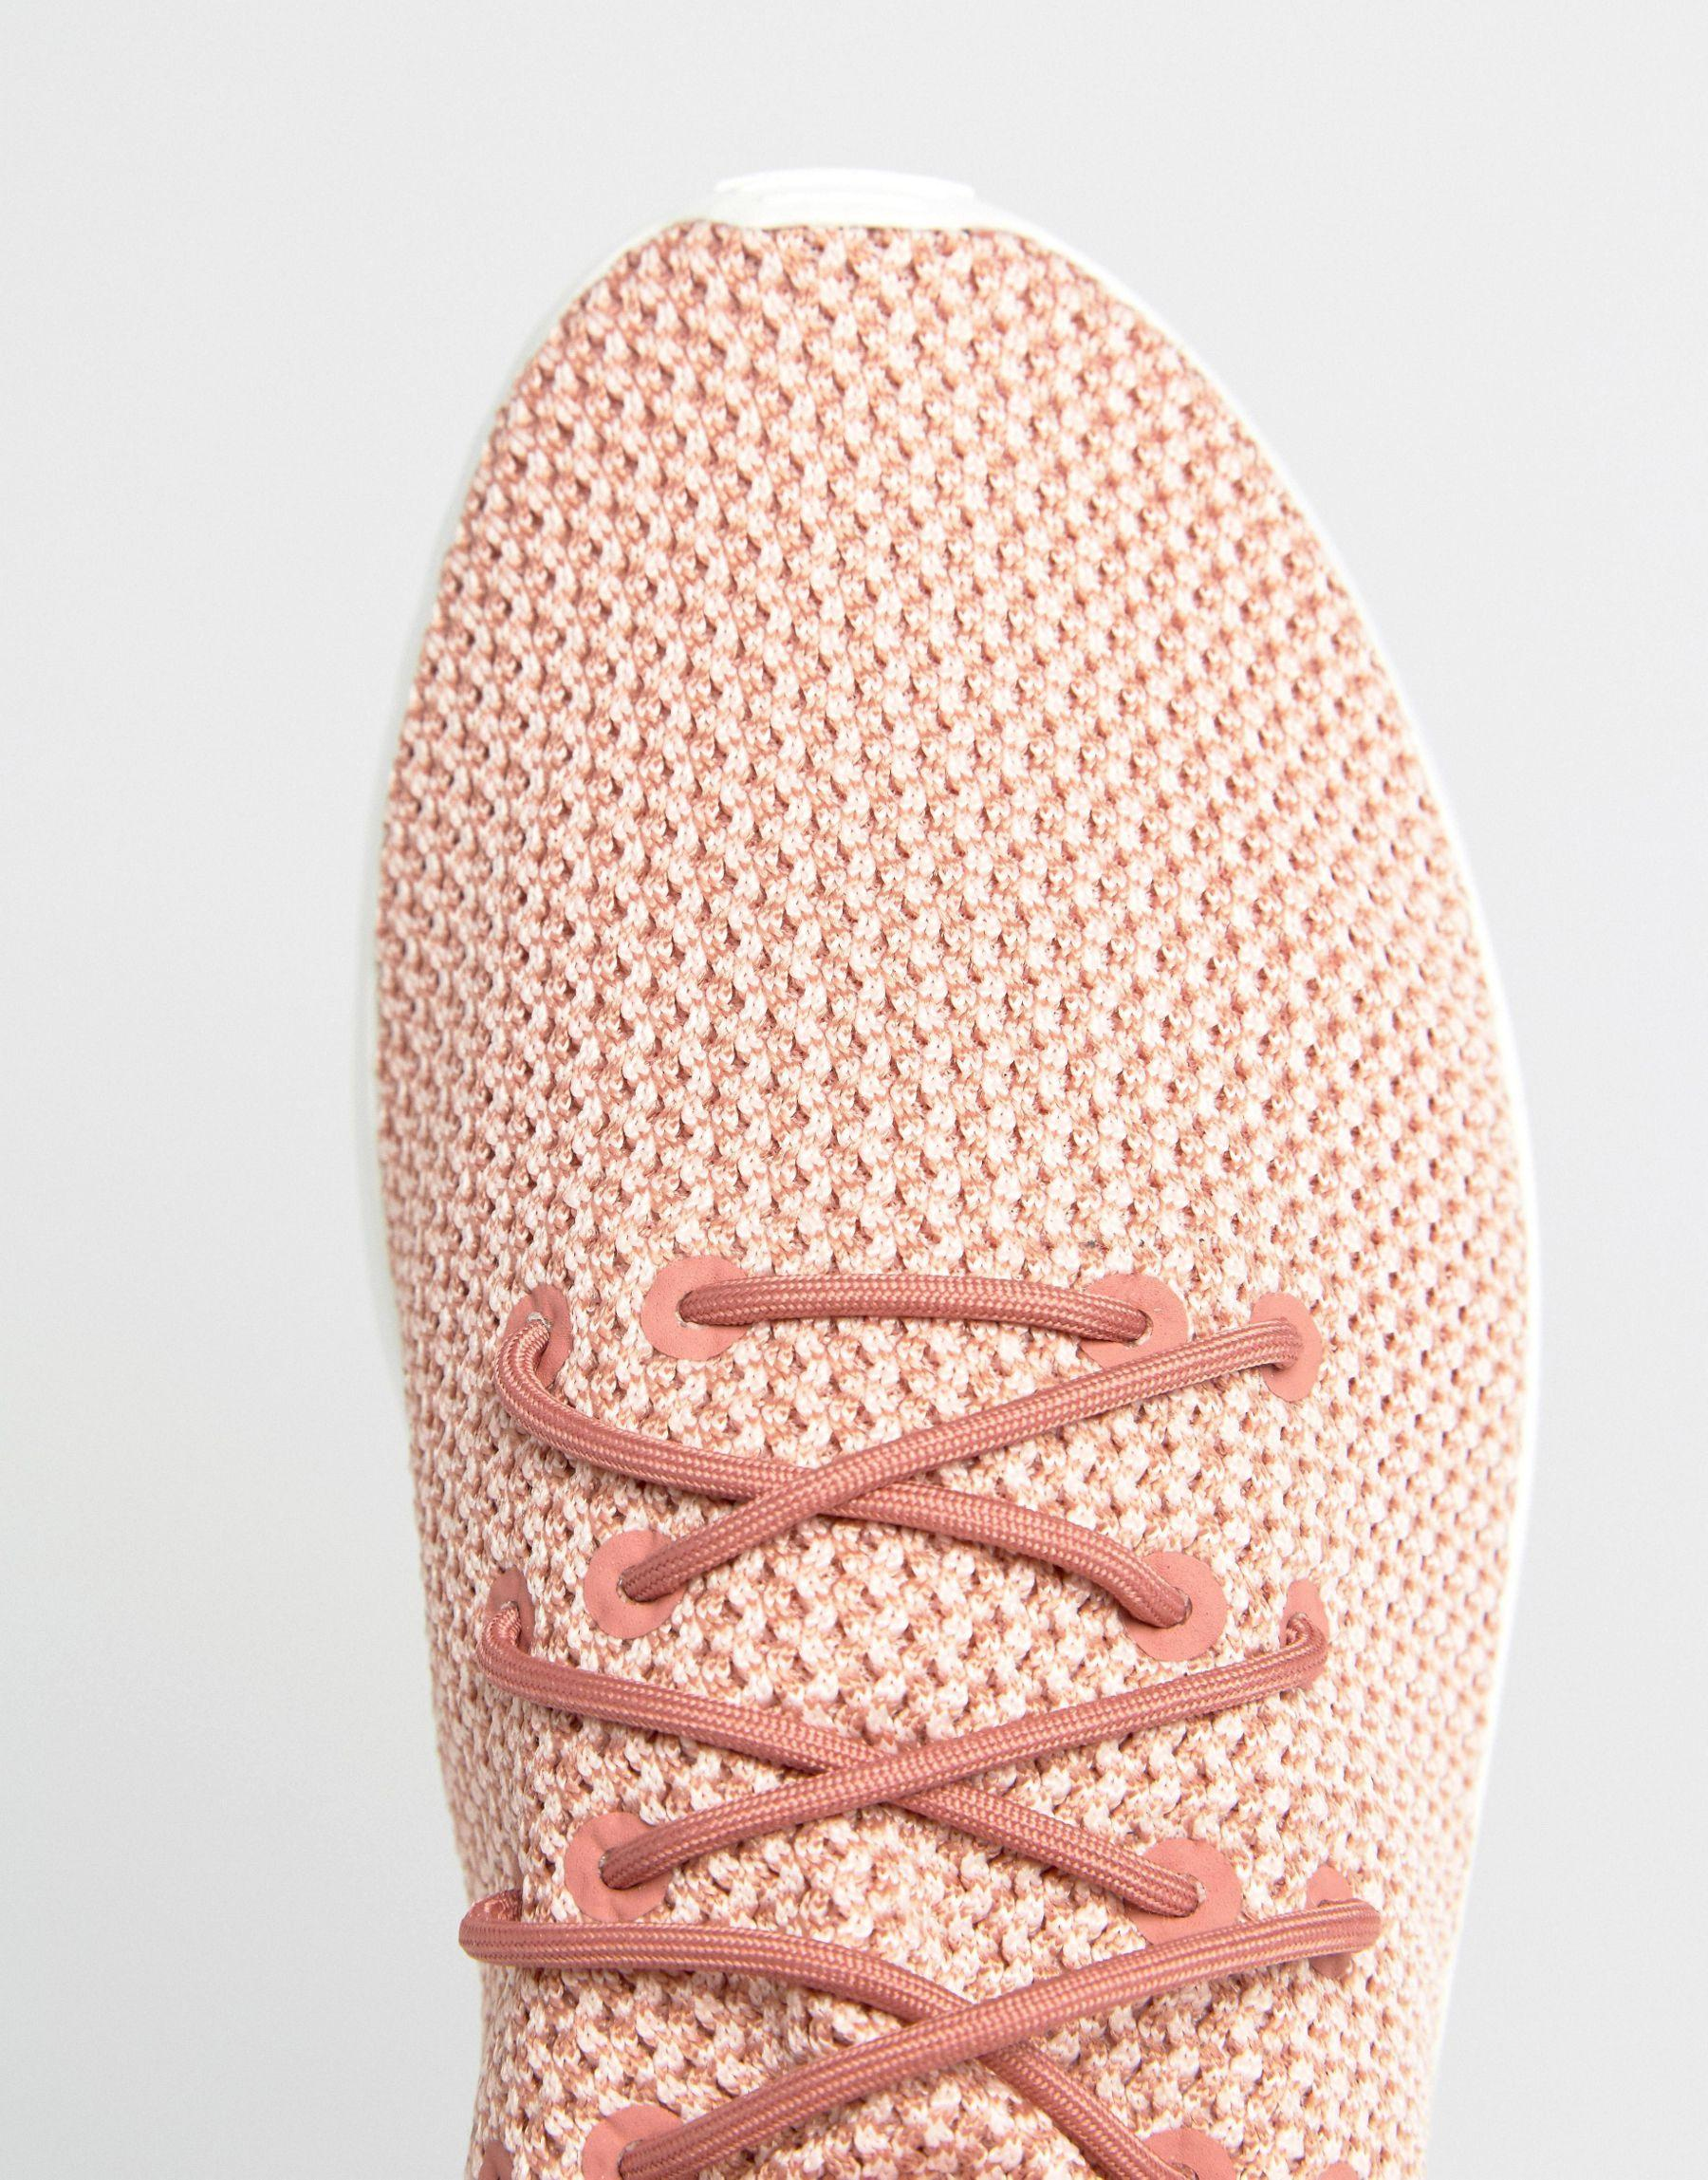 new products 264aa 9b71a adidas Originals Originals Dusky Pink Zx Flux Adv Sneakers in Pink - Lyst